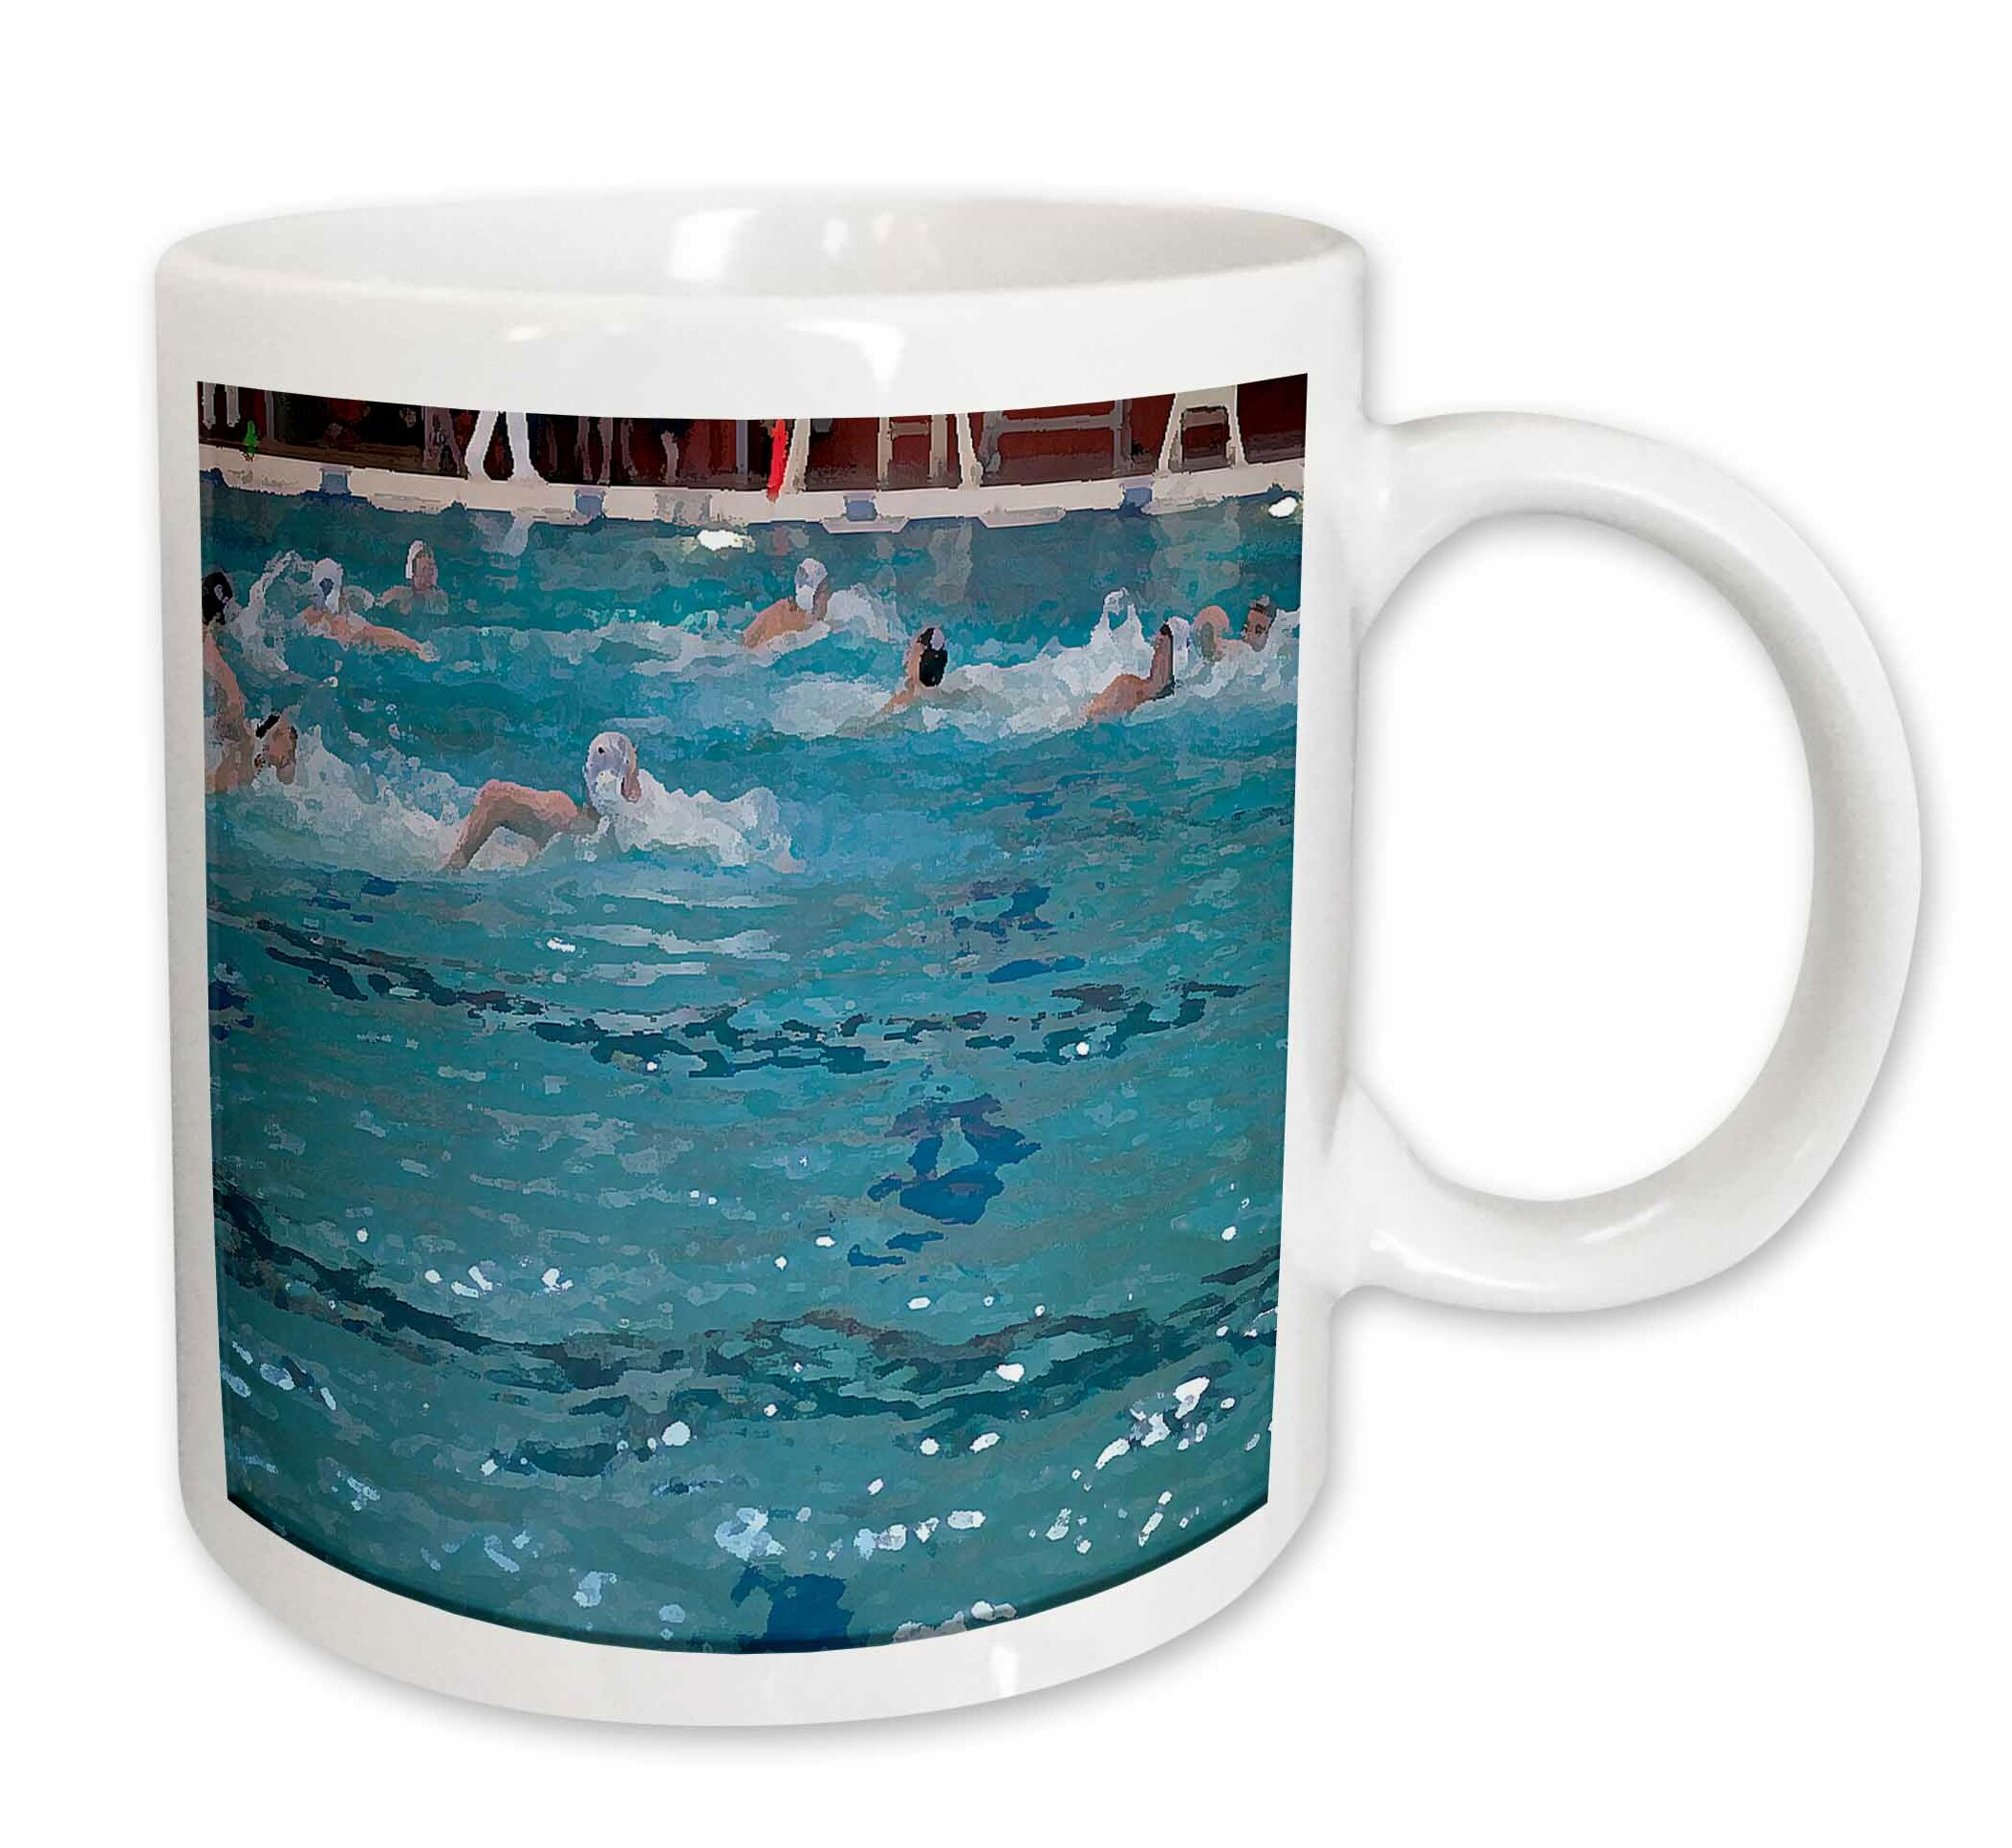 East Urban Home Boys Water Polo Team Swimming To Get The Ball Into The Net At A Swimming Pool In Cedar City Utah Coffee Mug Wayfair